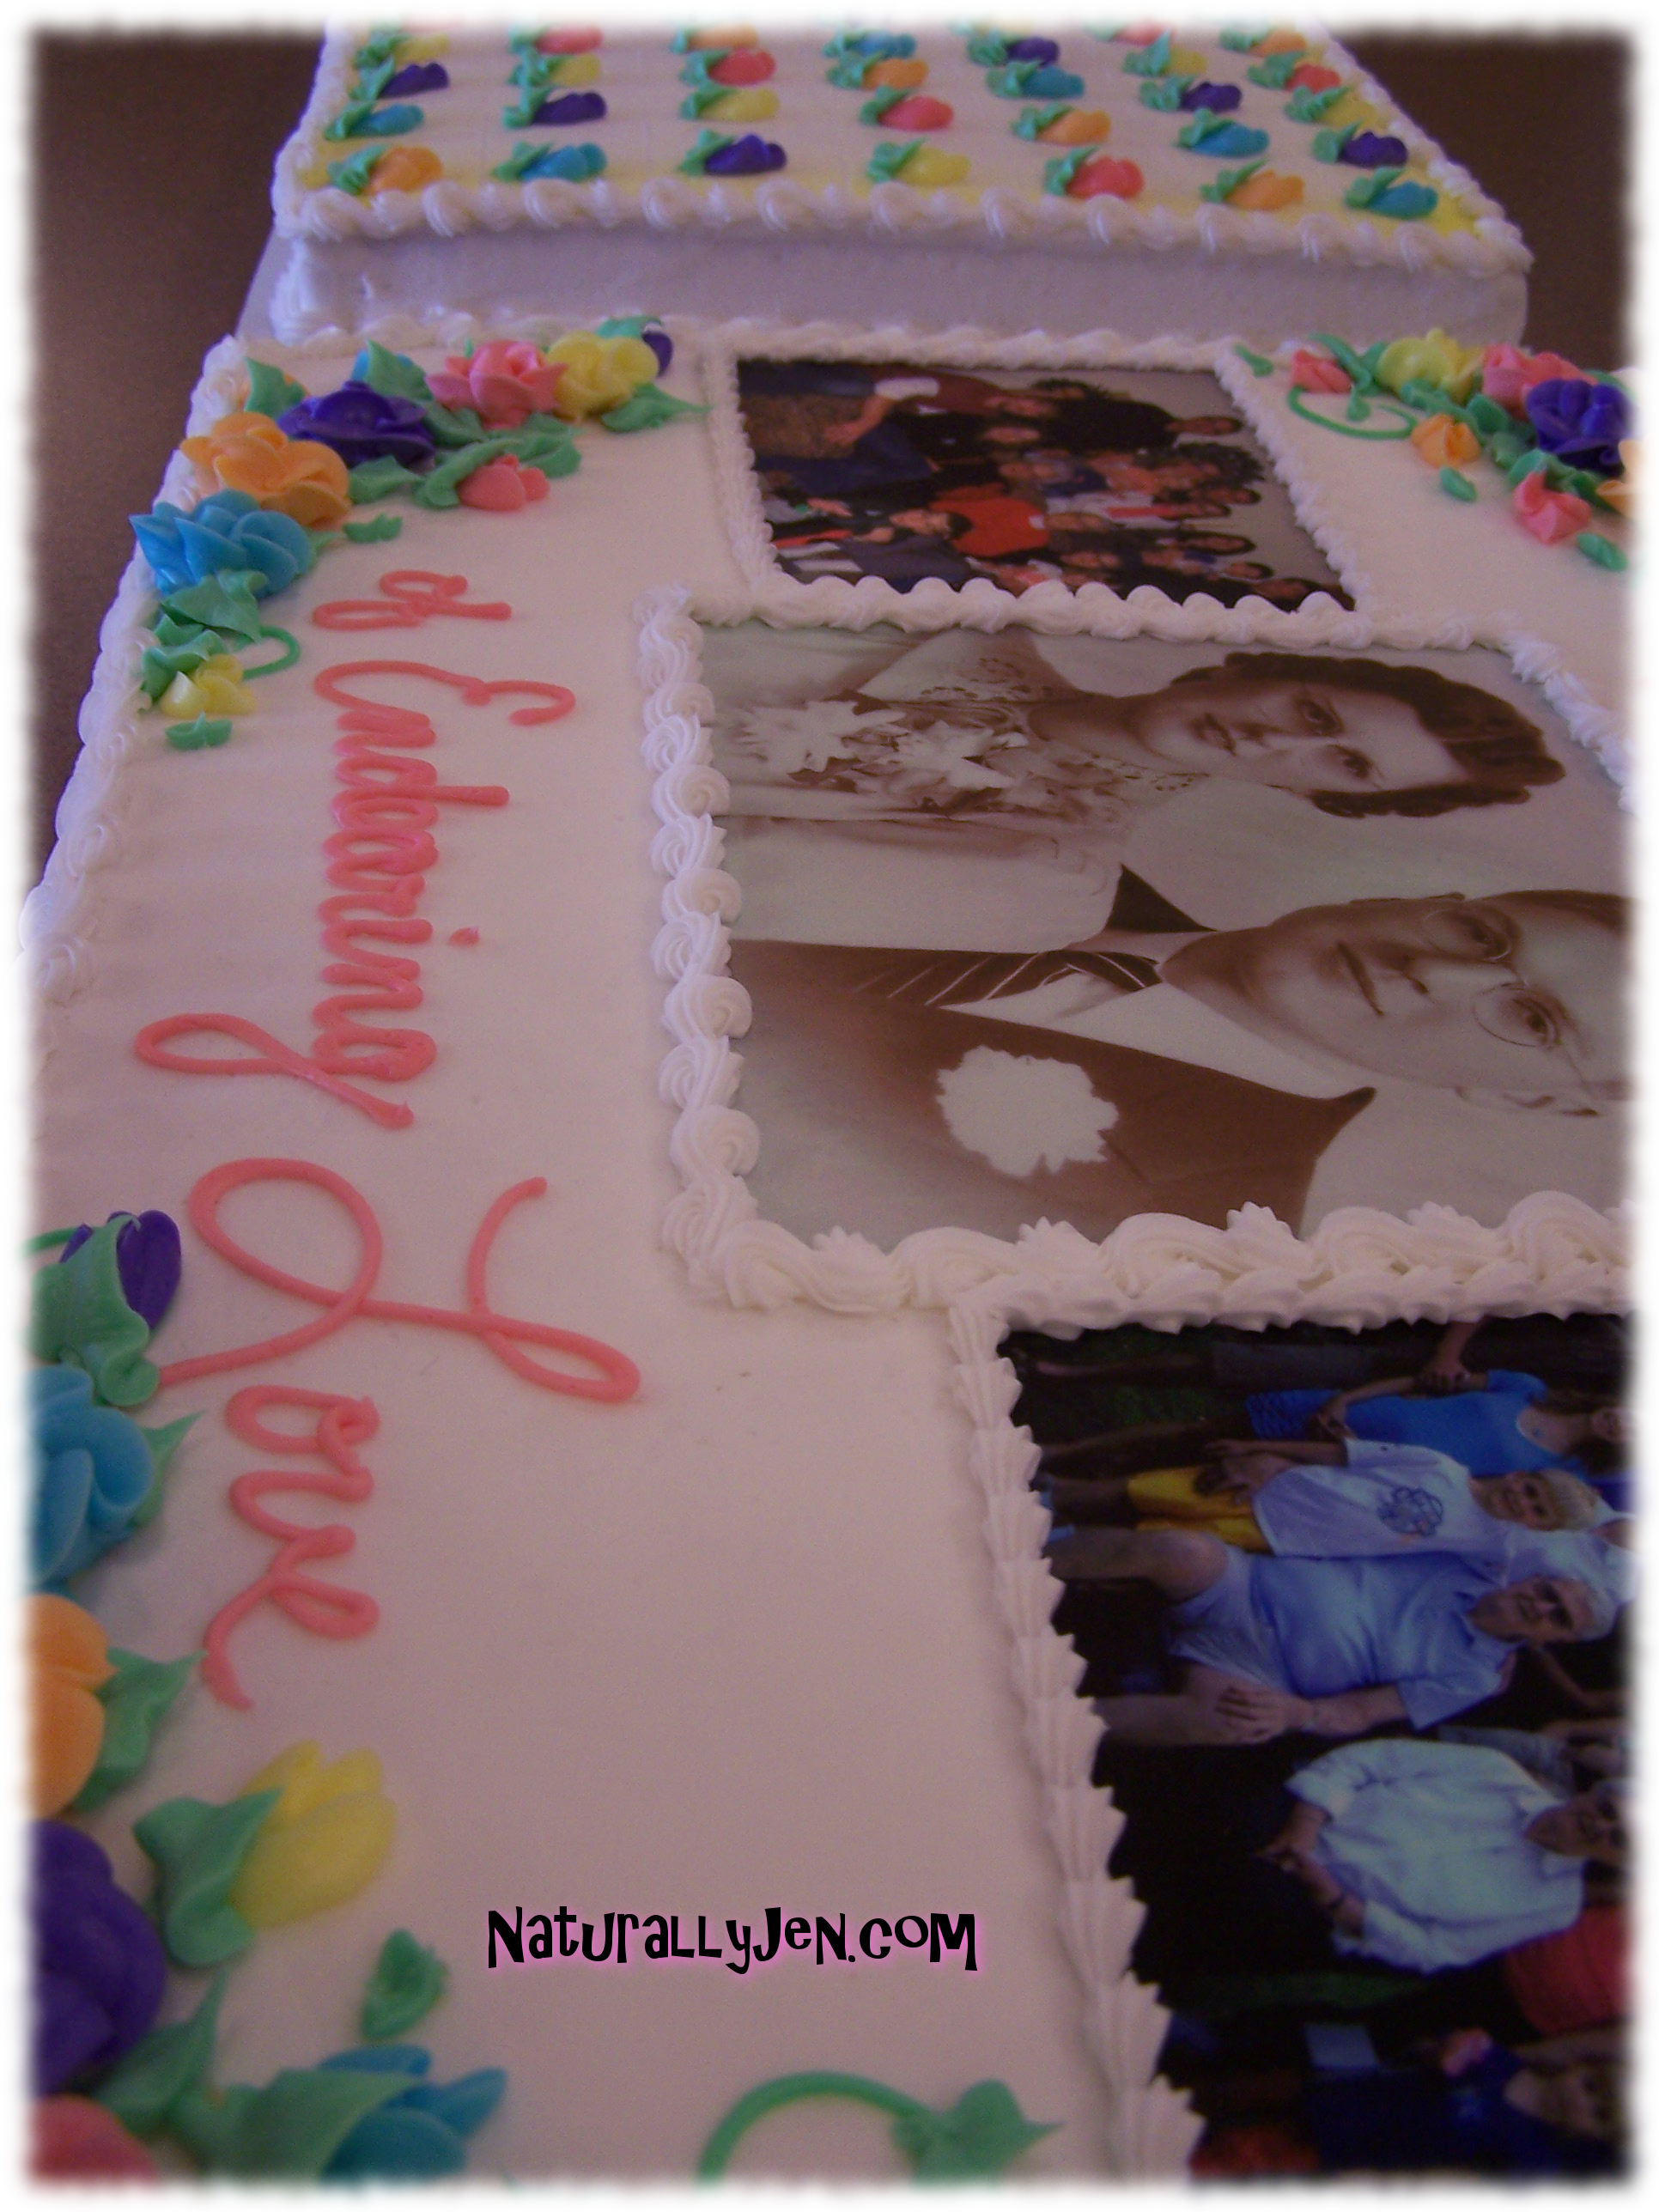 Edible Printed Photographs for Cakes by Naturally Jen